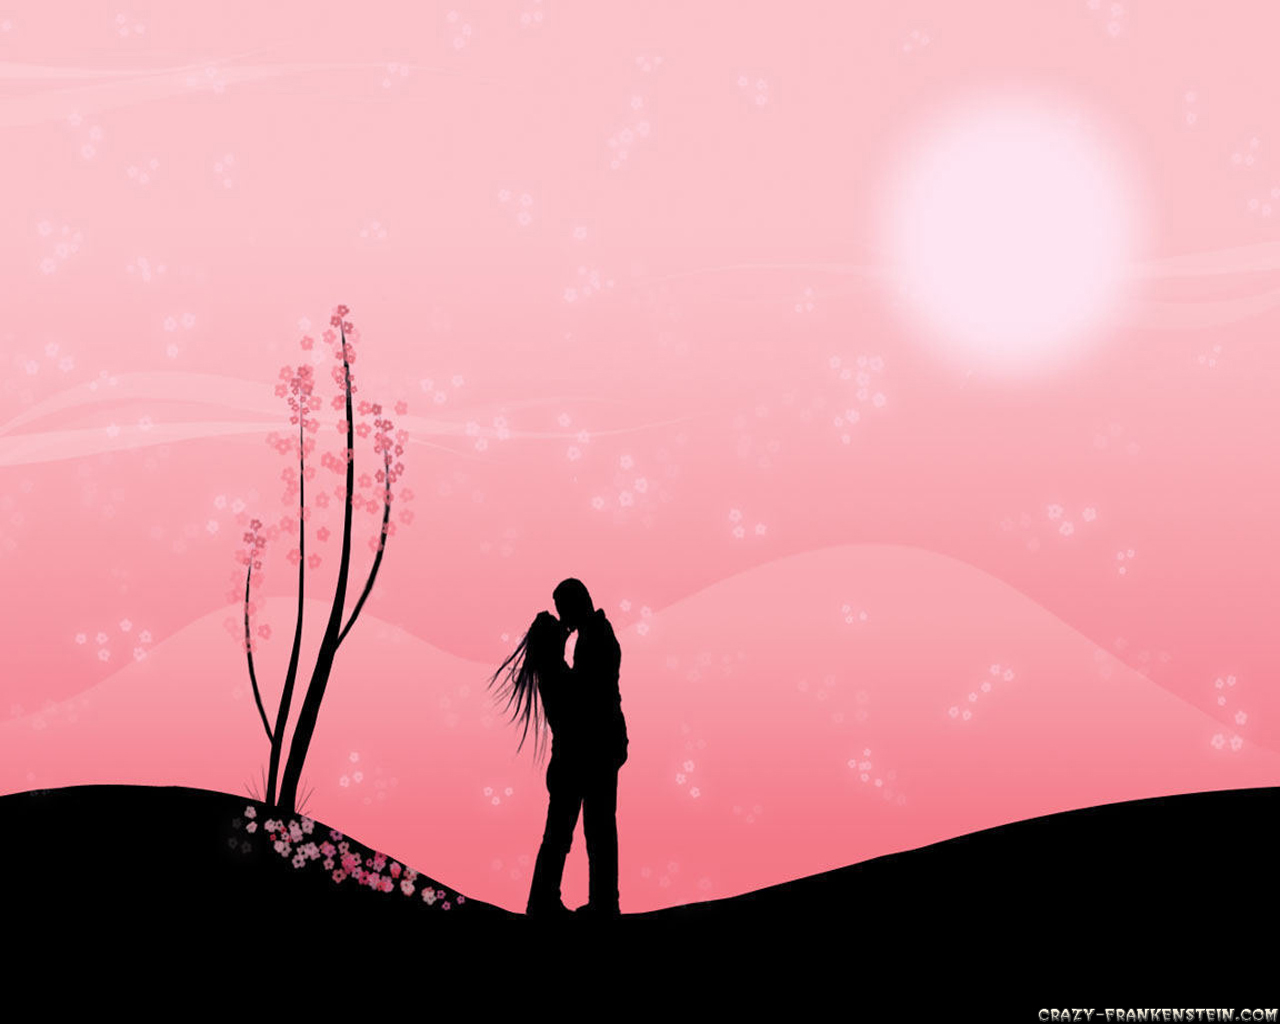 Wallpaper s For Mobile and PC: Love Romantic Photos,Images,Wallpapers For Mob...